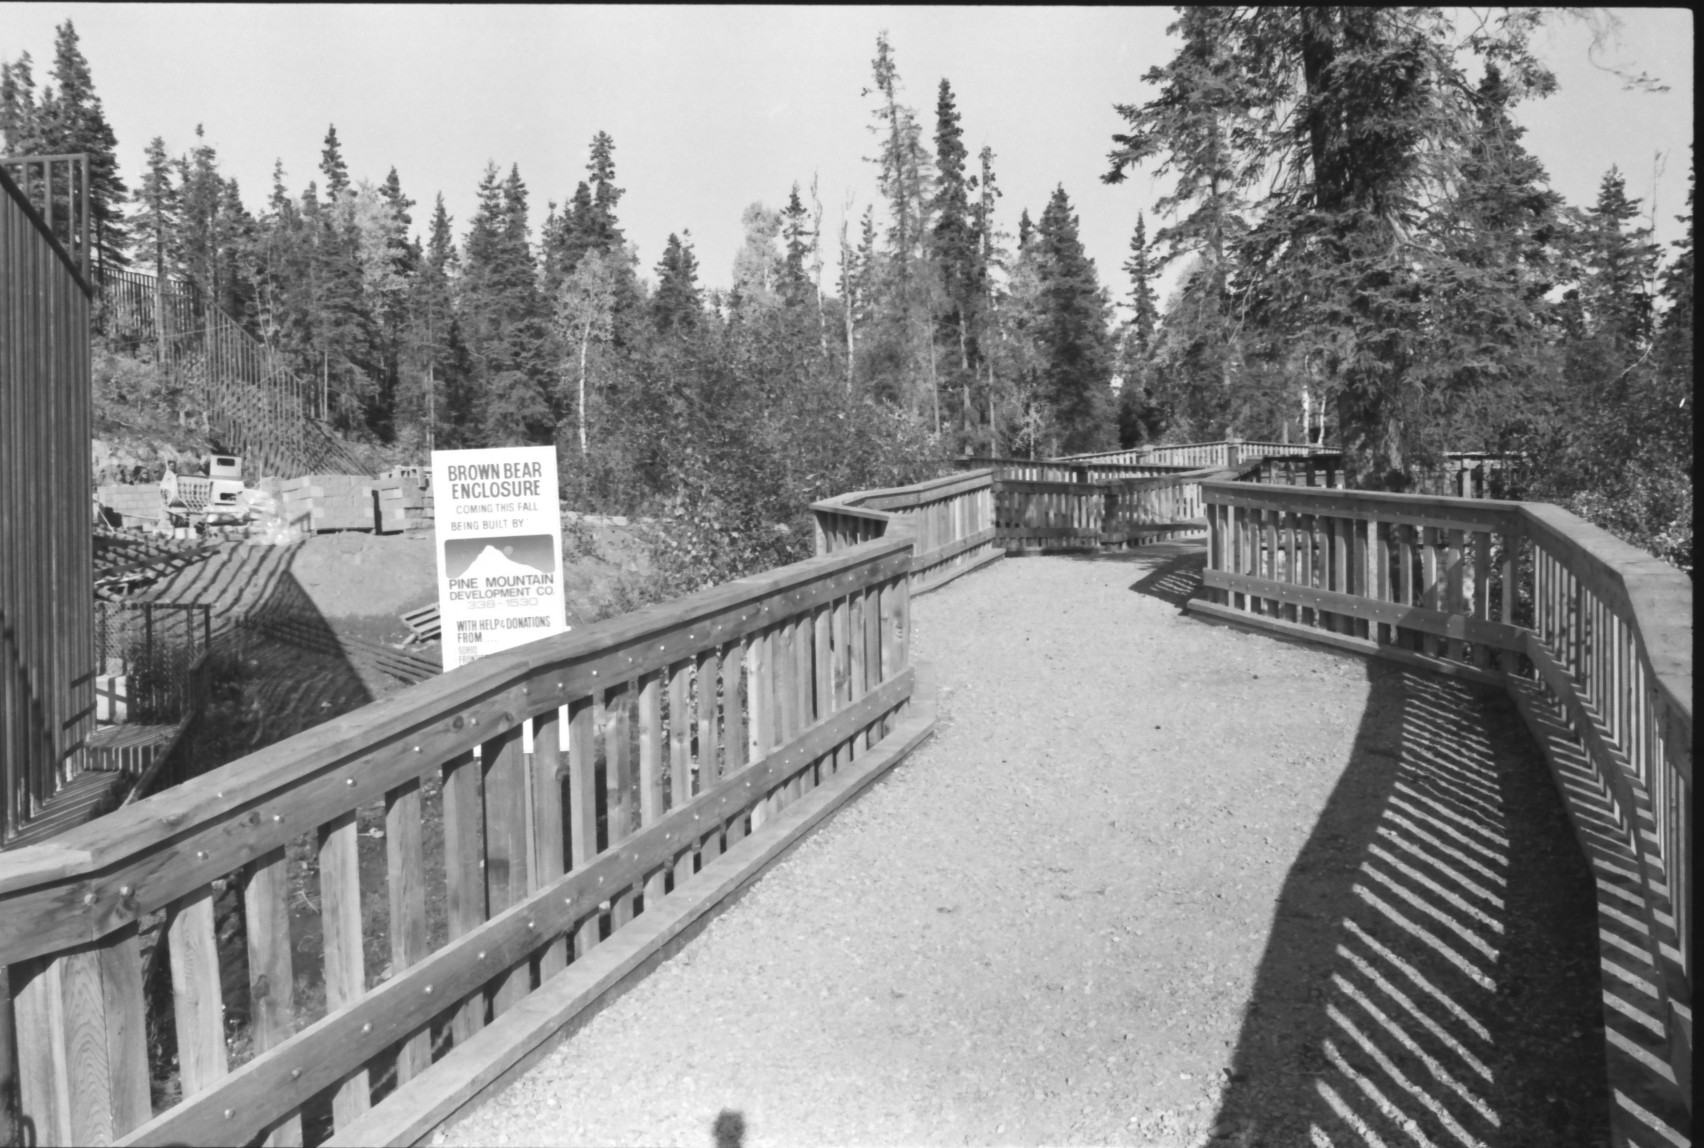 Brown Bear habitat under construction before it opened in 1983 to house Jake and his late sister Jackie.